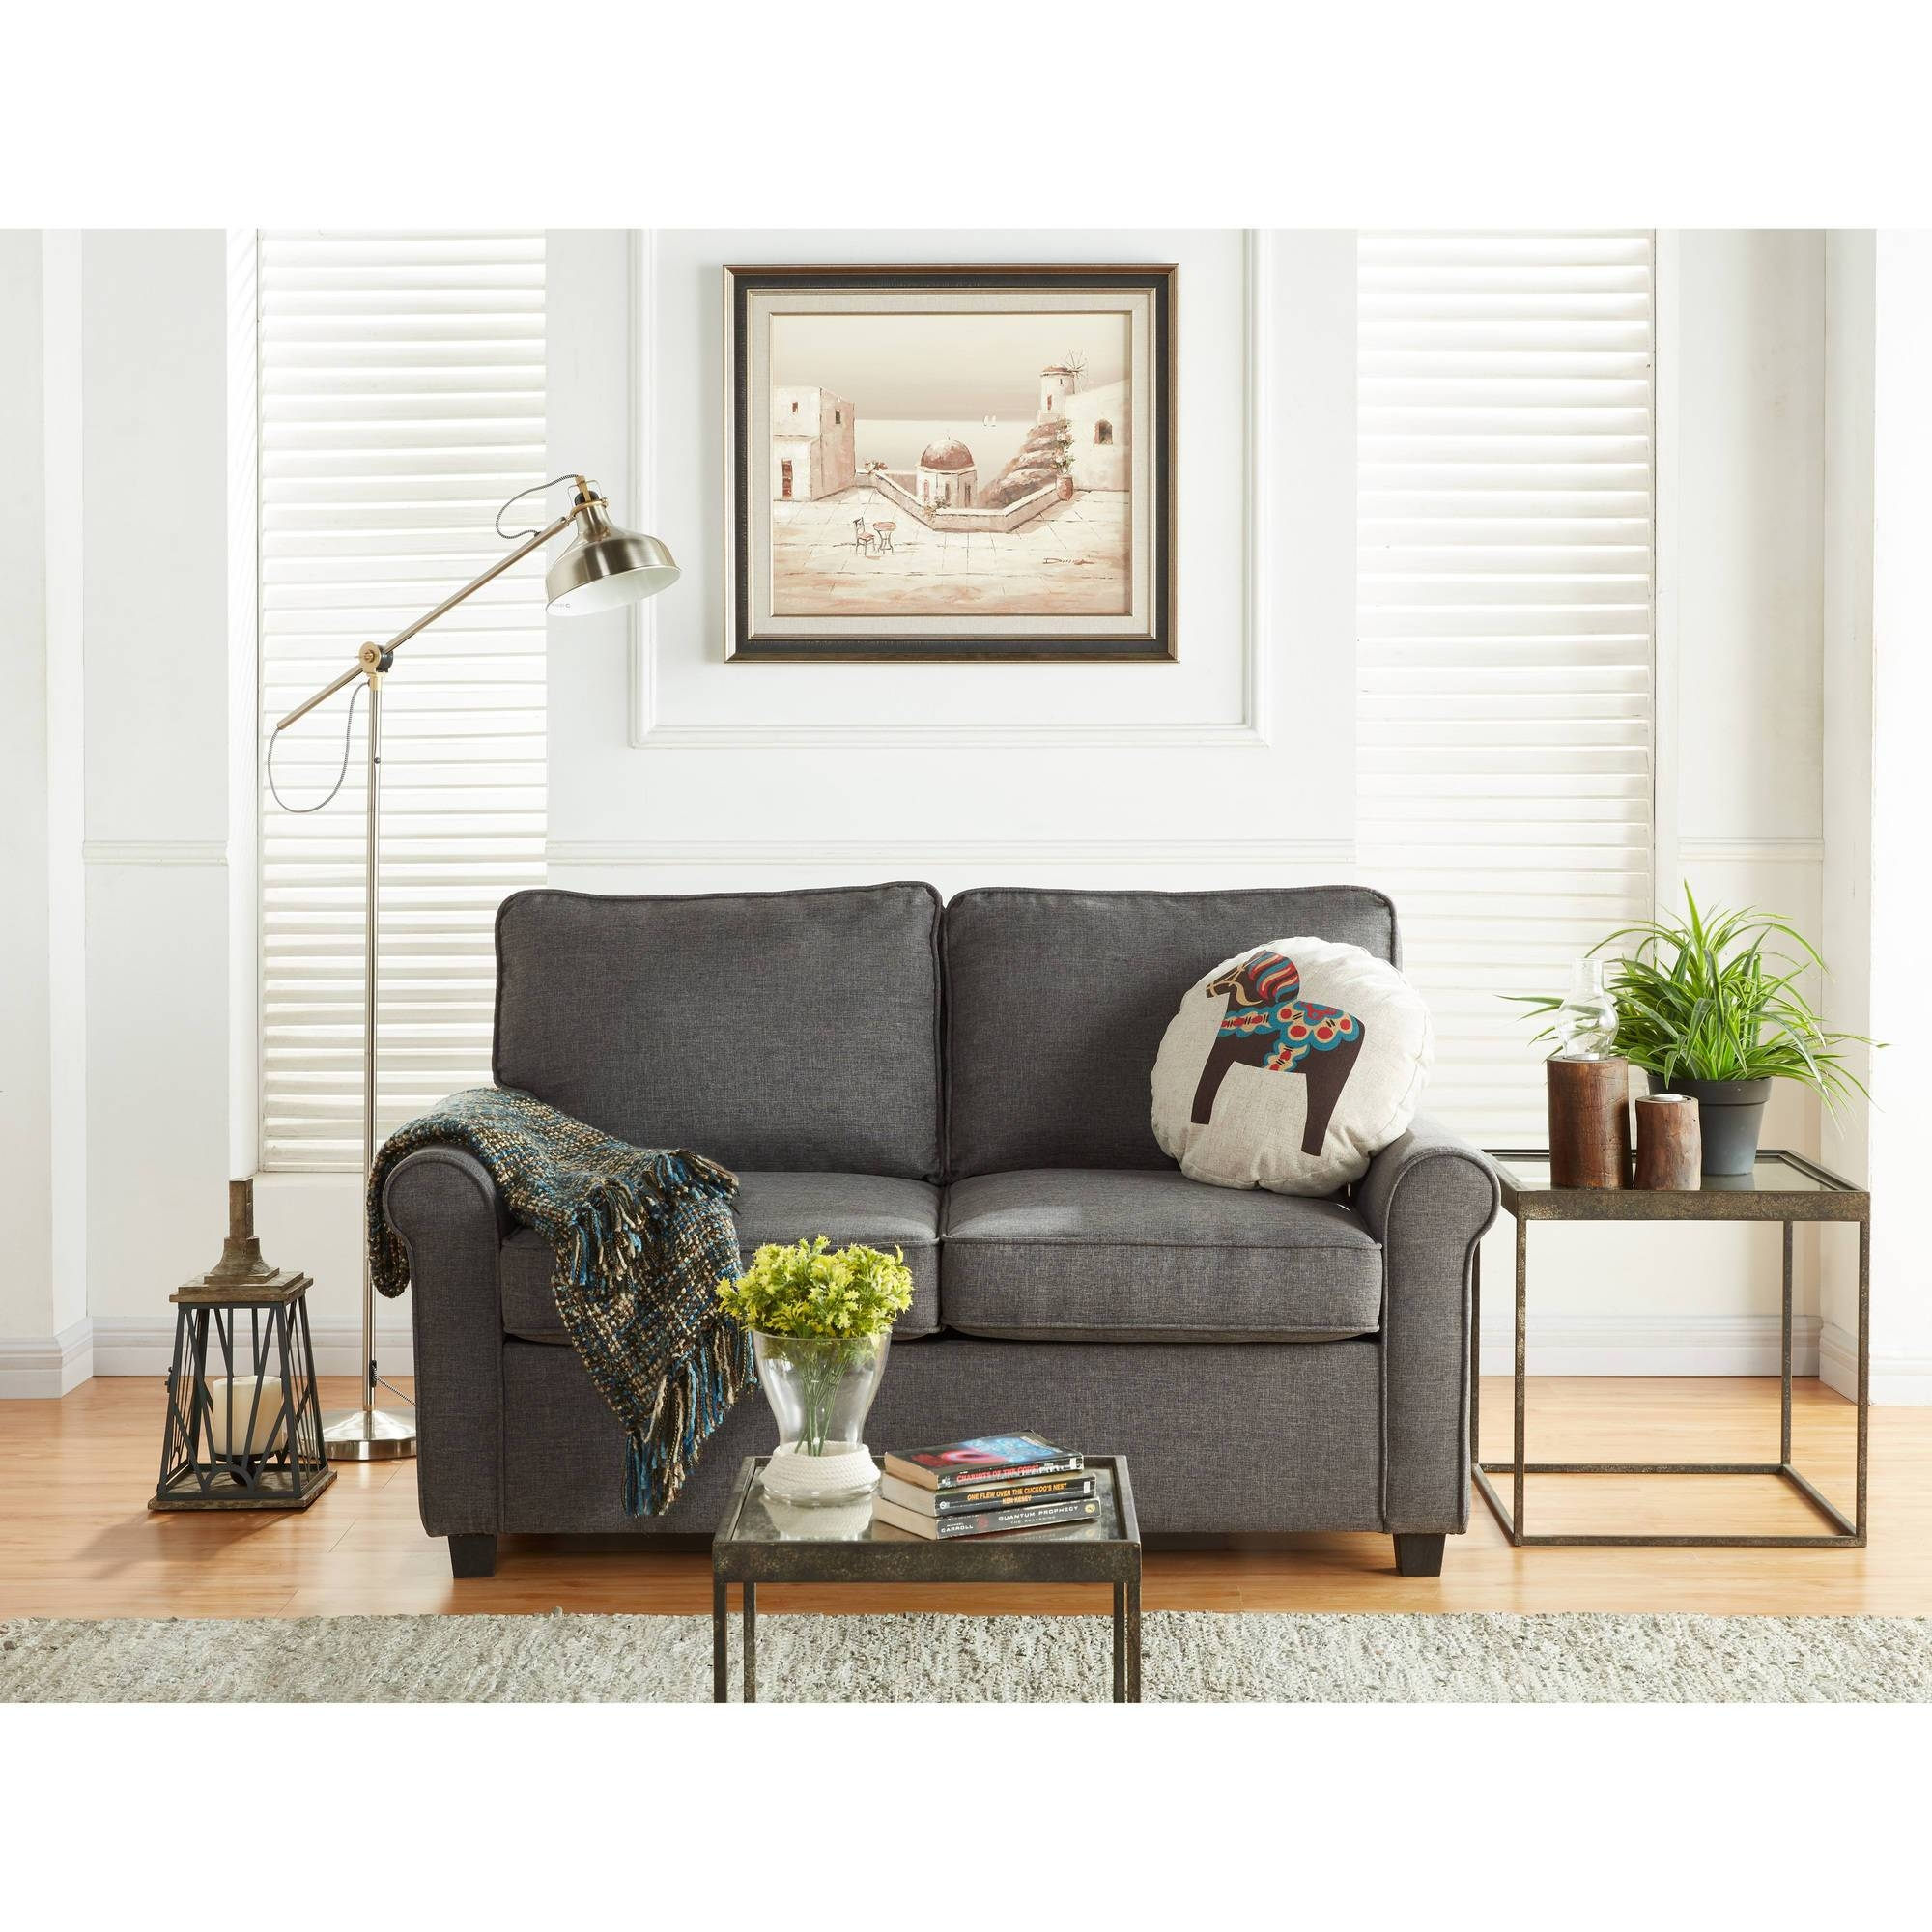 Mainstays Sofa Sleeper With Memory Foam Mattress, Grey - Walmart with regard to Mainstays Sleeper Sofas (Image 7 of 15)